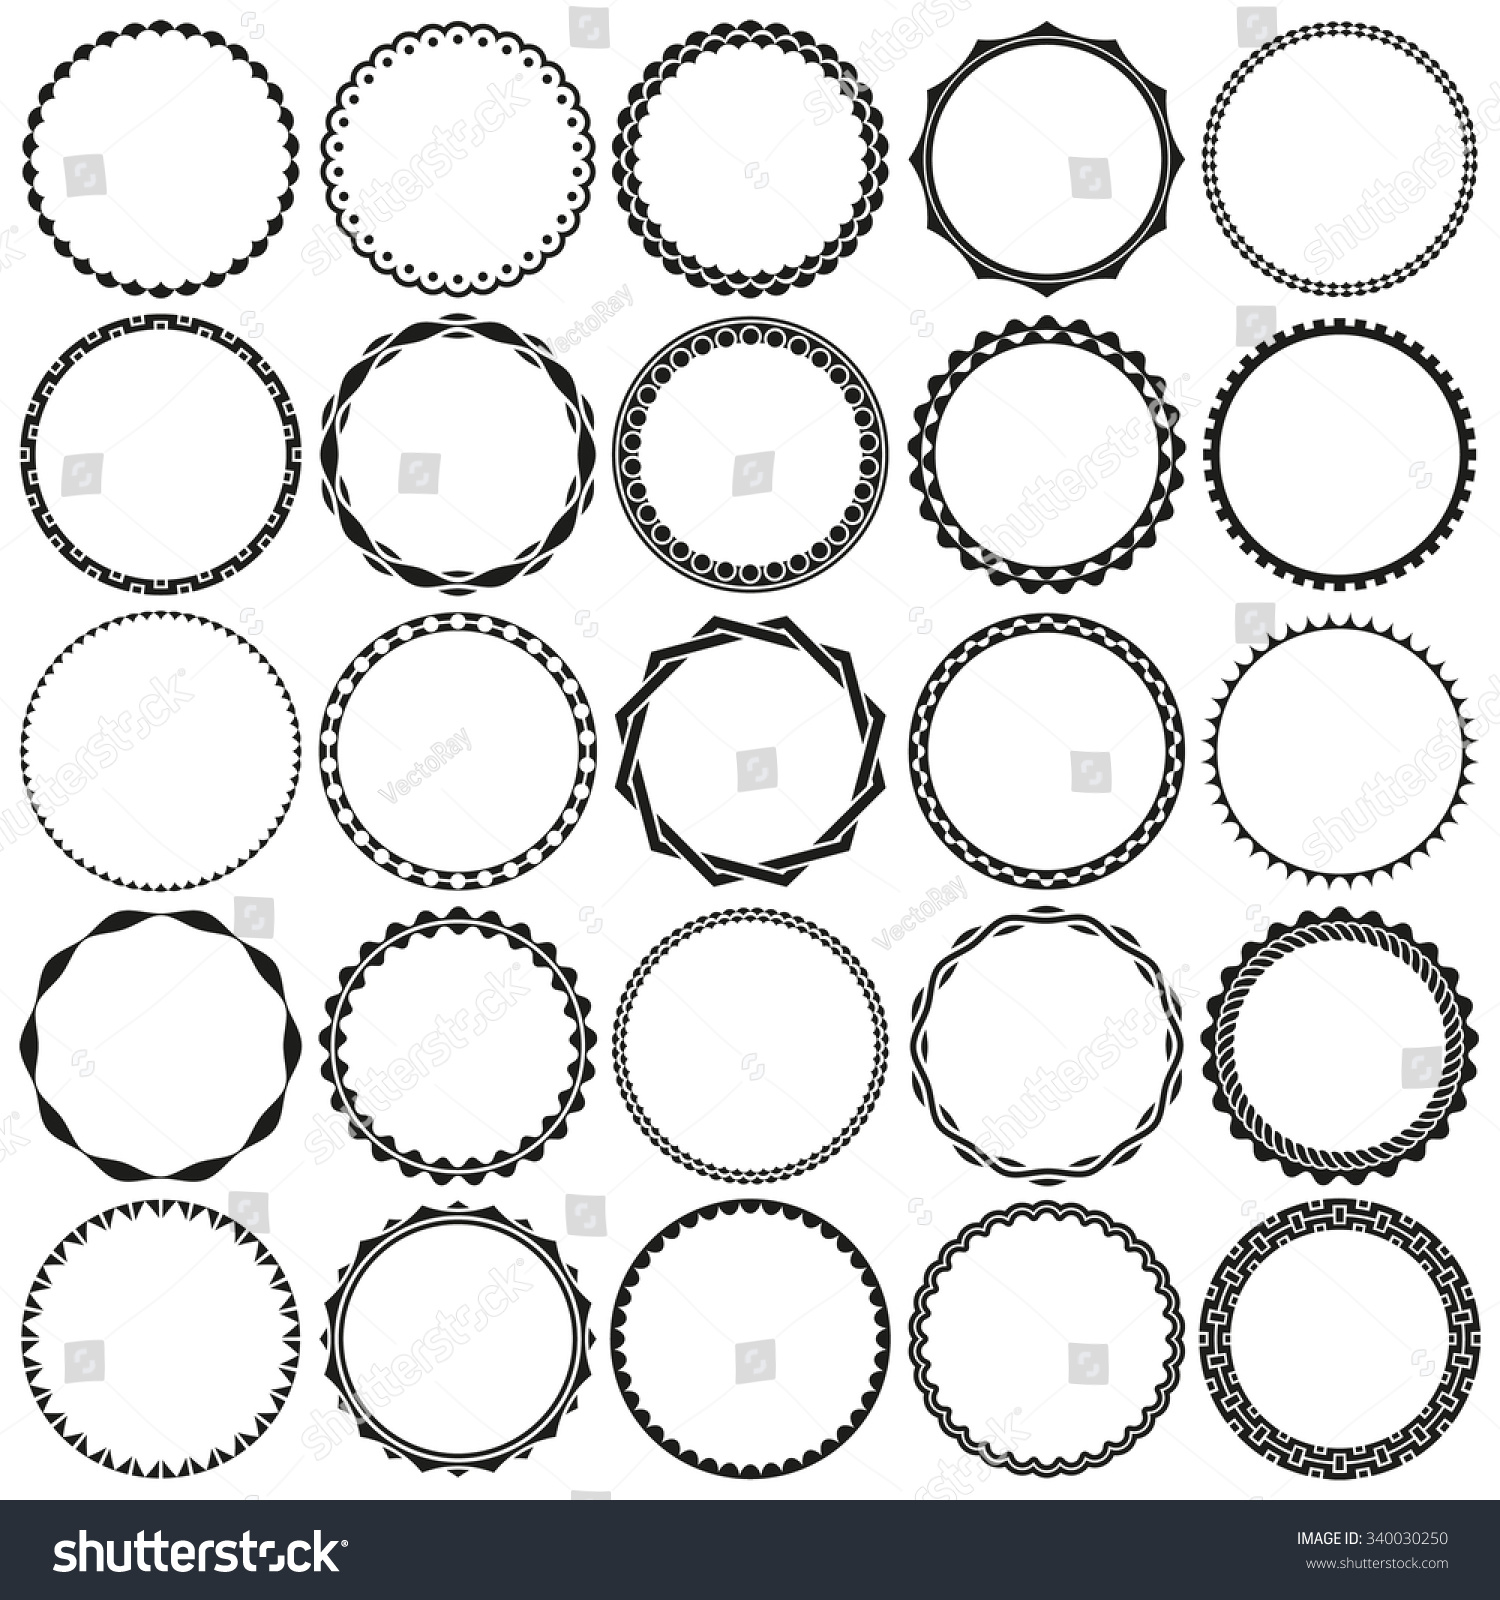 Collection Round Decorative Border Frames Clear Stock Vector 340030250